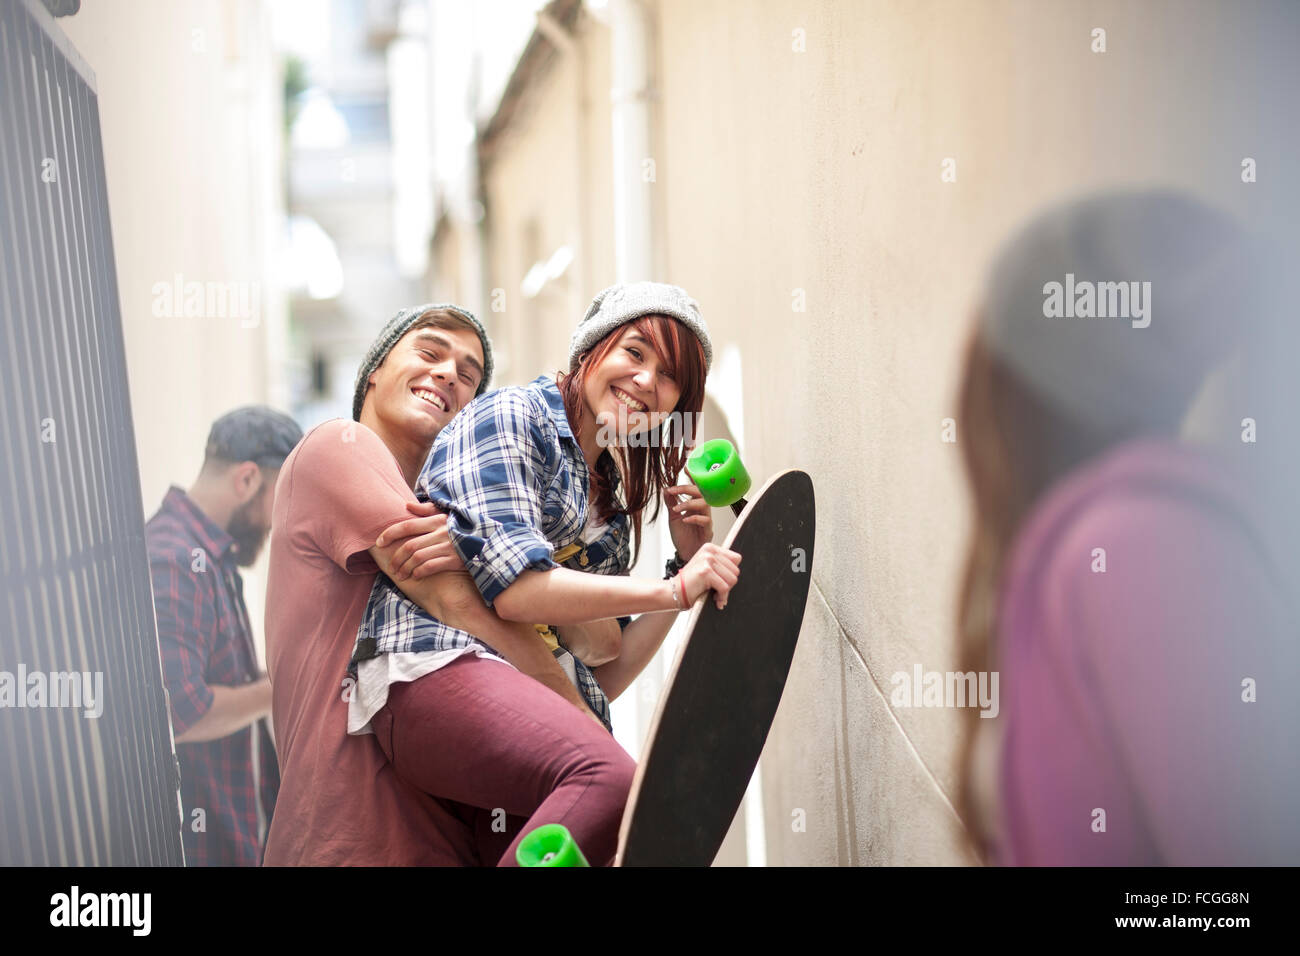 Friends   skateboard having fun in a passageway - Stock Image